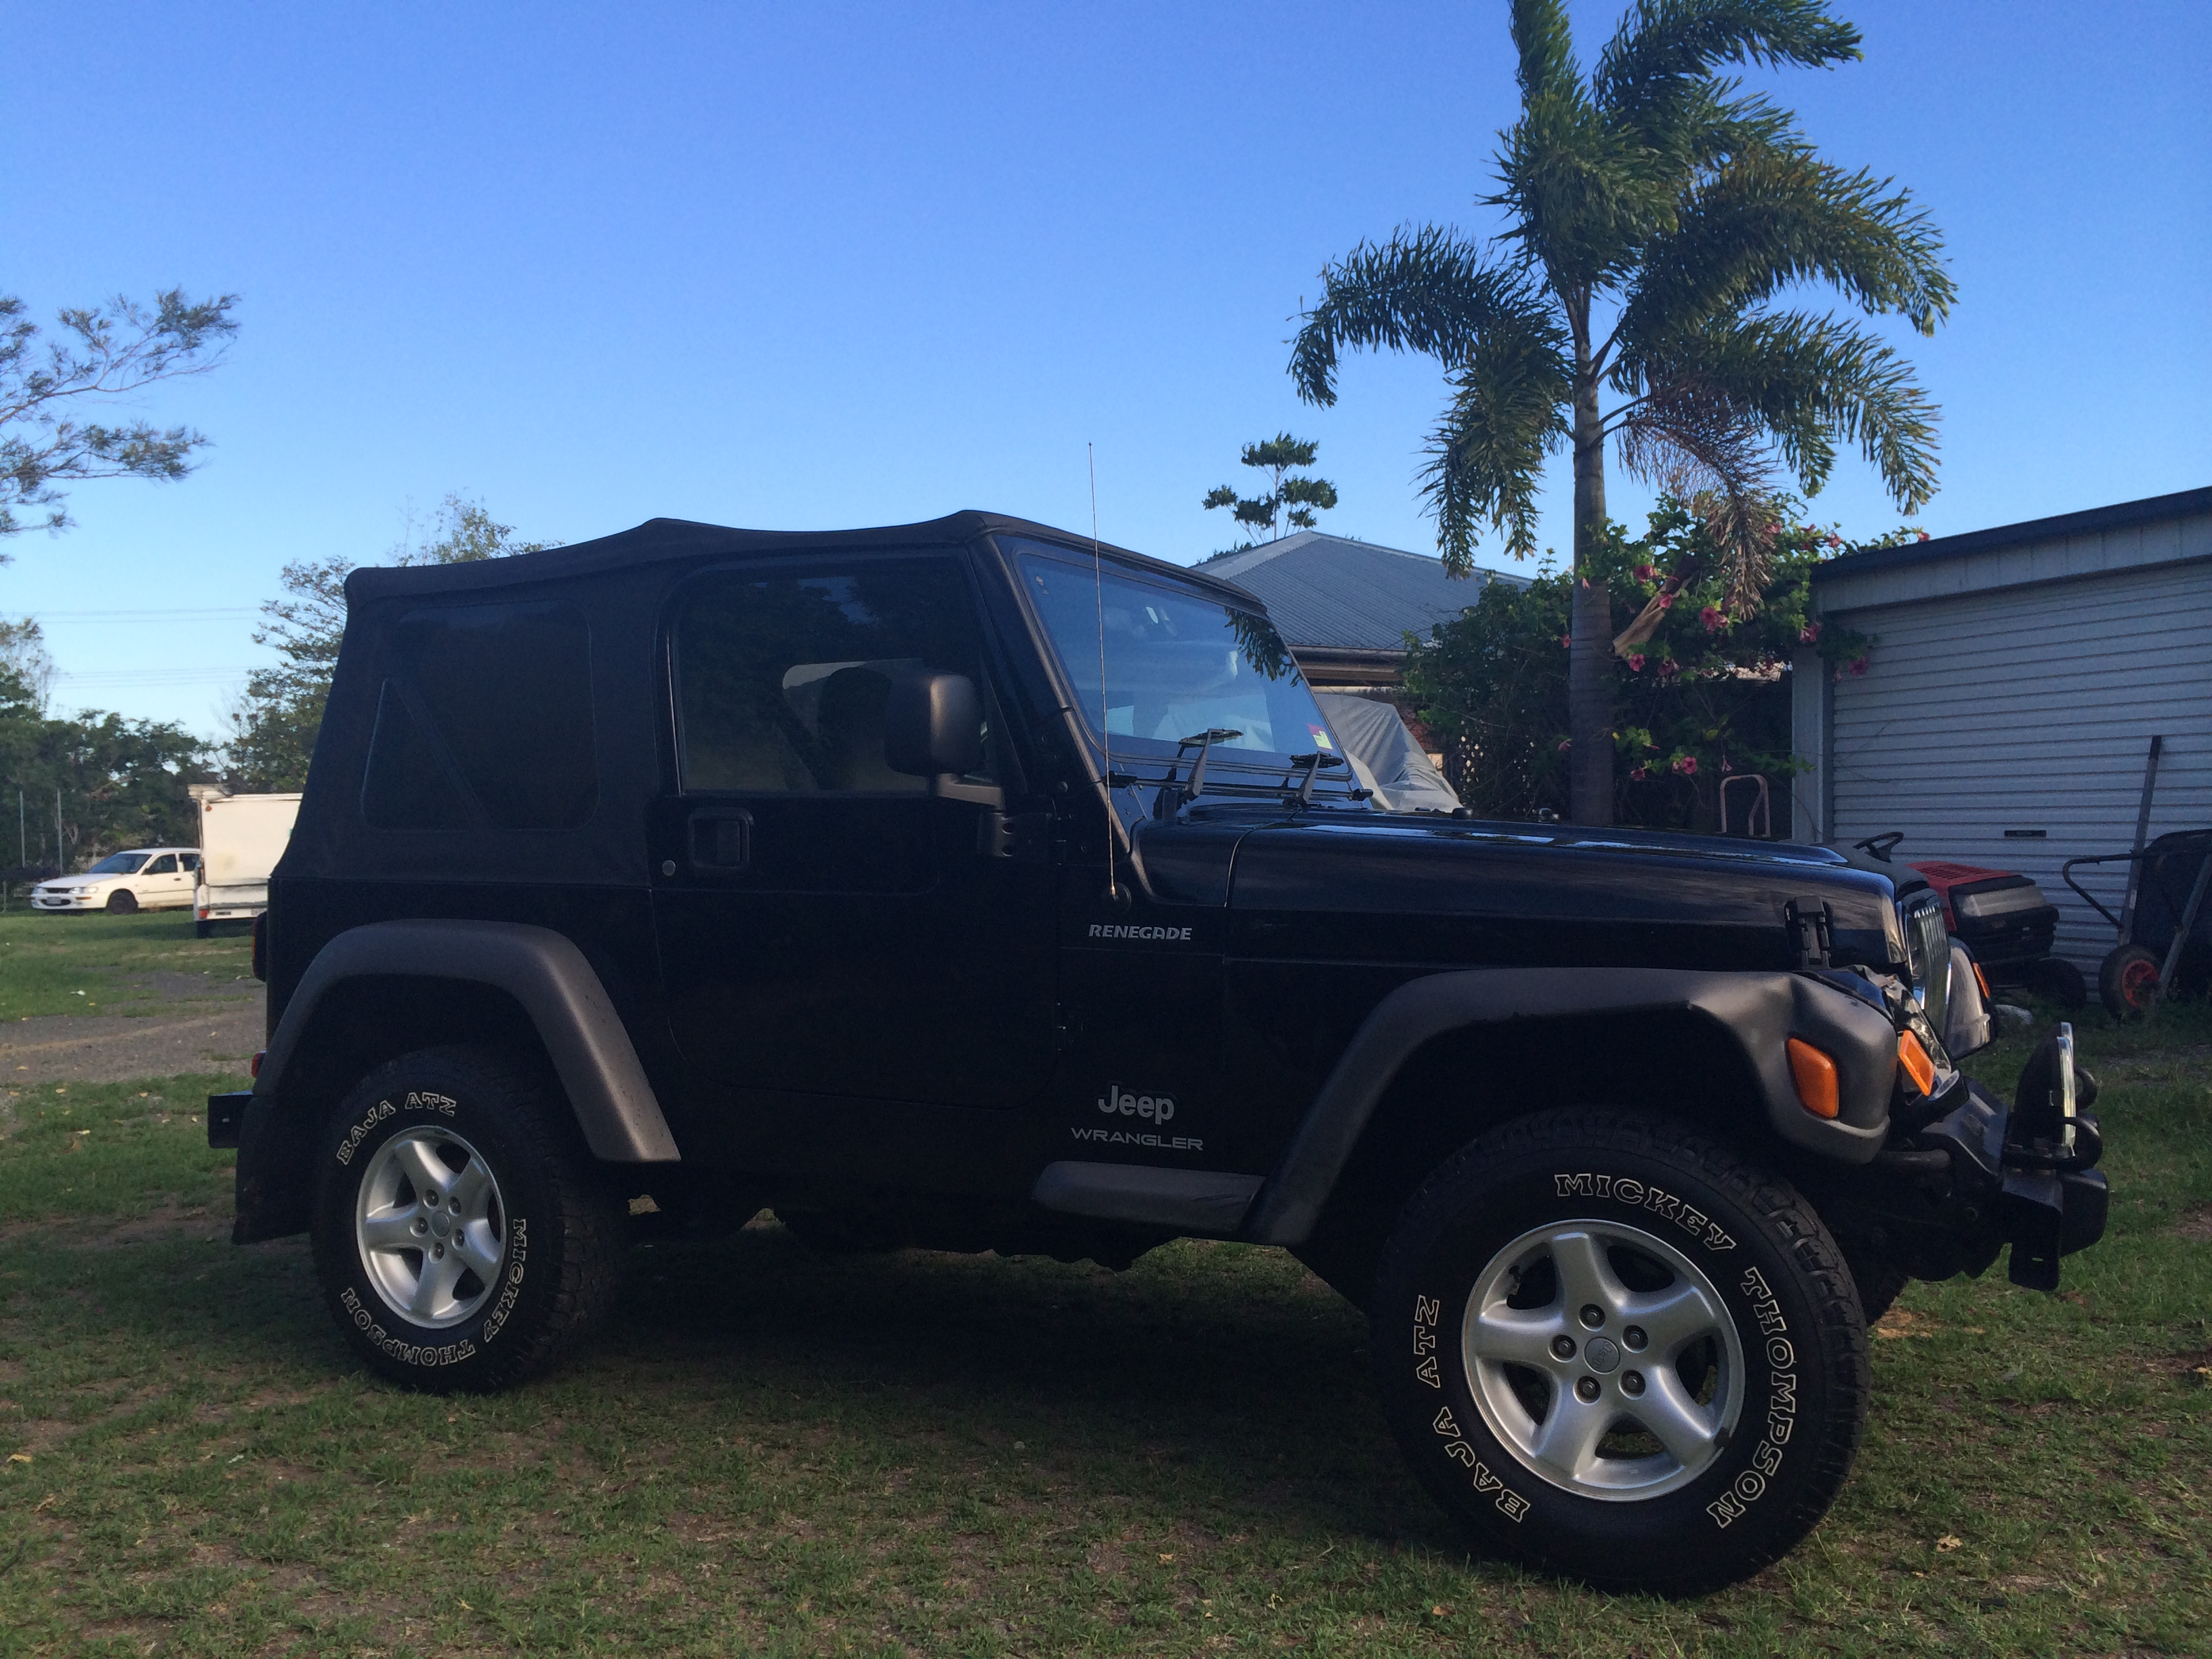 2005 jeep wrangler renegade 4x4 tj for sale or swap qld brisbane 2434862. Black Bedroom Furniture Sets. Home Design Ideas